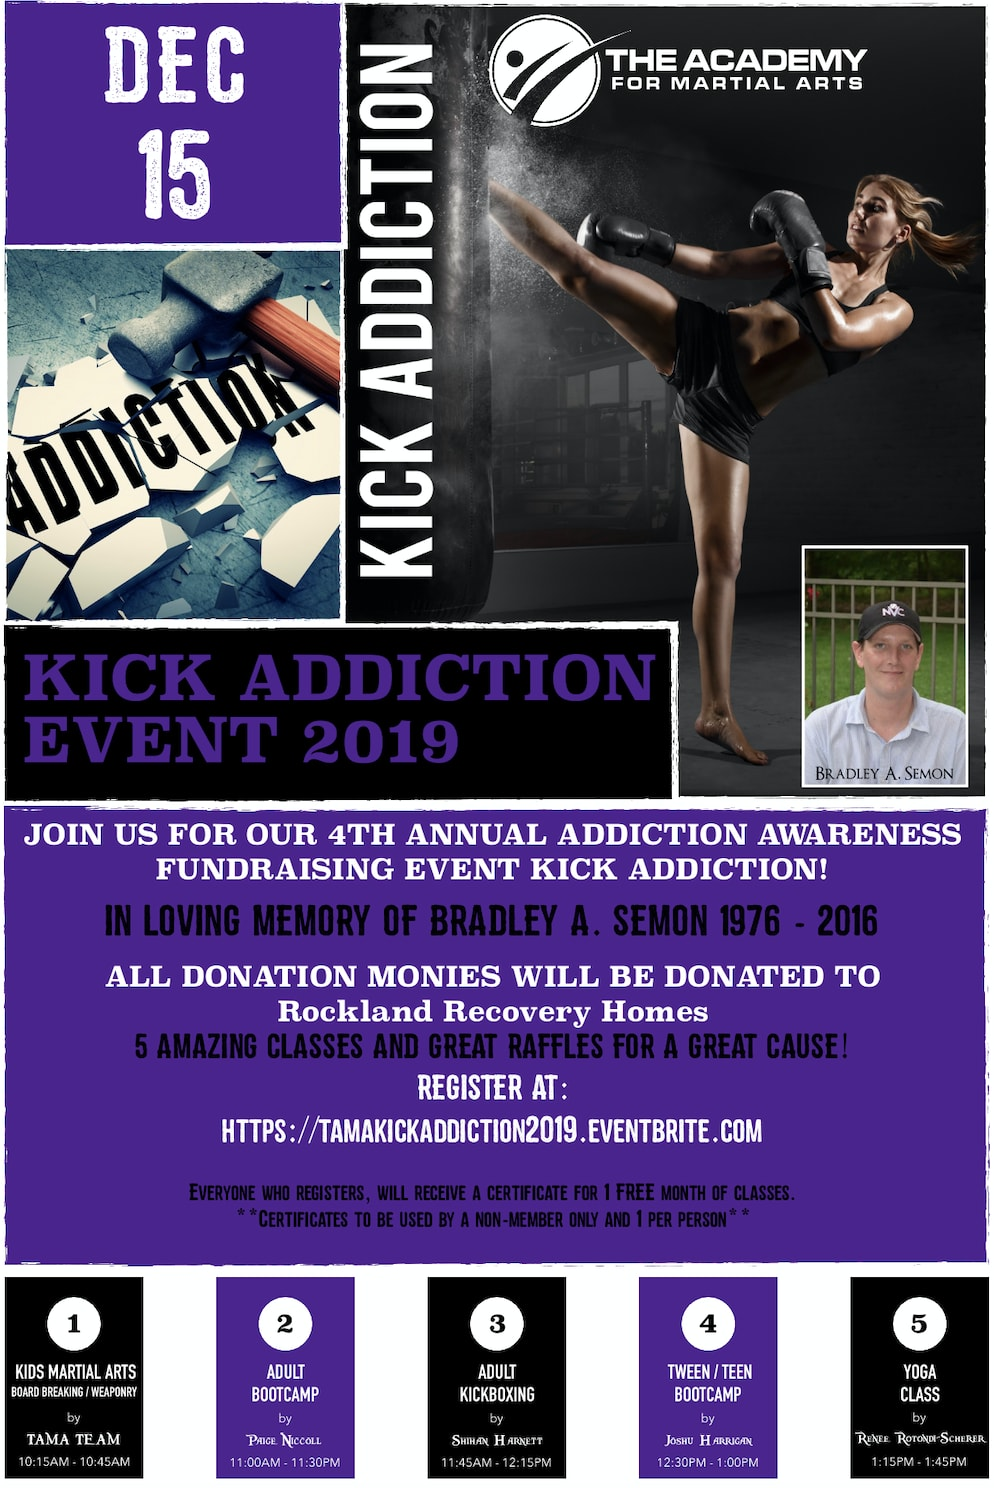 KICK ADDICTION EVENT 2019 in Orangeburg